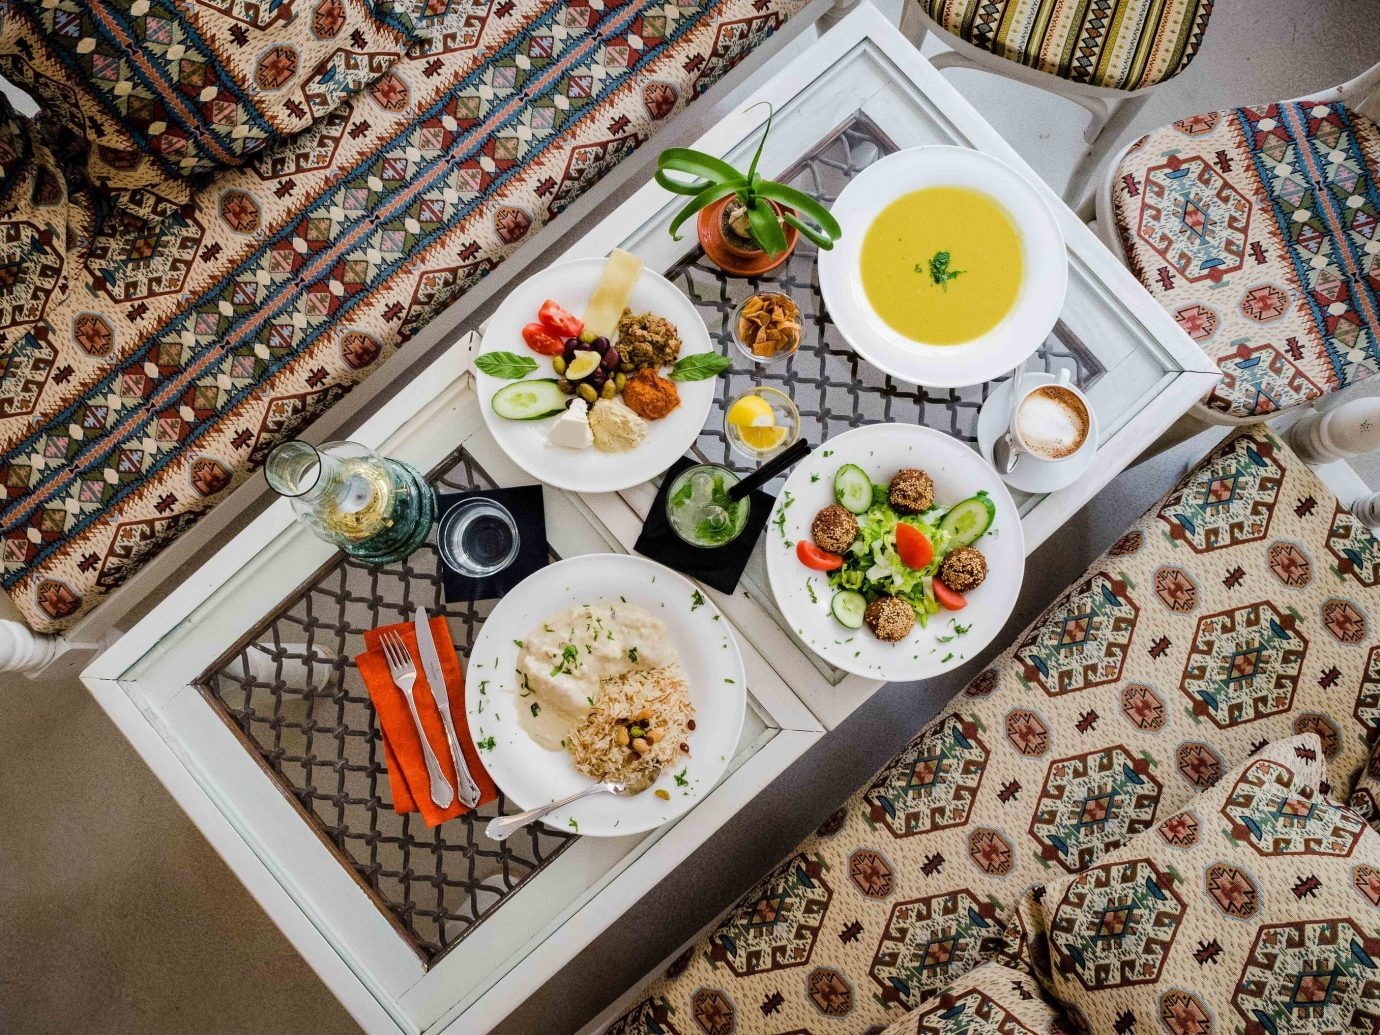 Trip Ideas food table plate meal indoor cuisine dish breakfast brunch lunch finger food asian food recipe variety